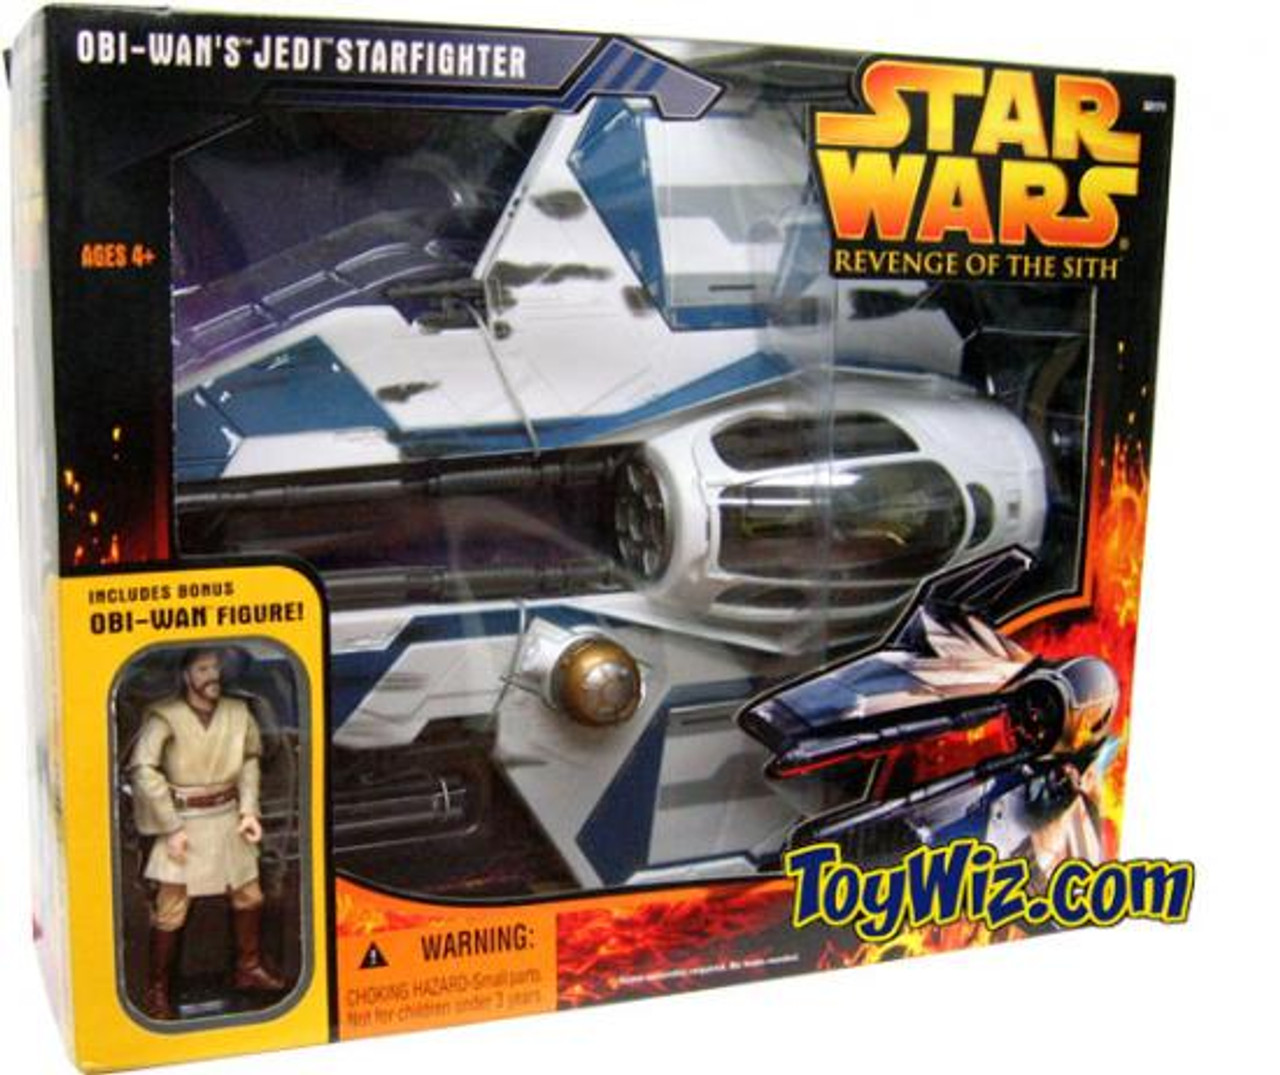 Star Wars Revenge of the Sith 2005 Obi-Wan's Jedi Starfighter Exclusive Action Figure Vehicle [Blue Trim]